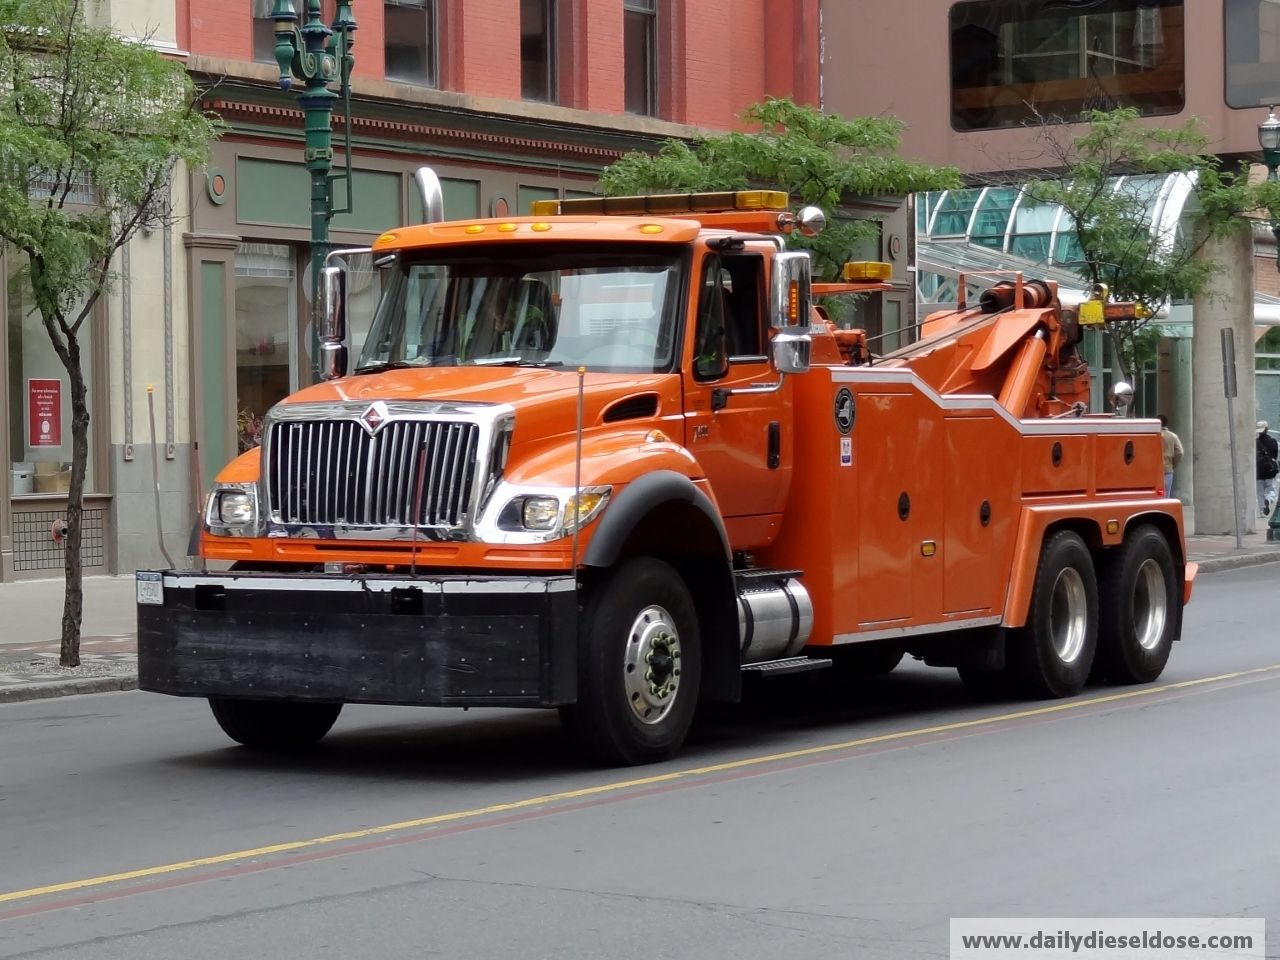 International 7660 tow truck who are you going to call when you need a tow